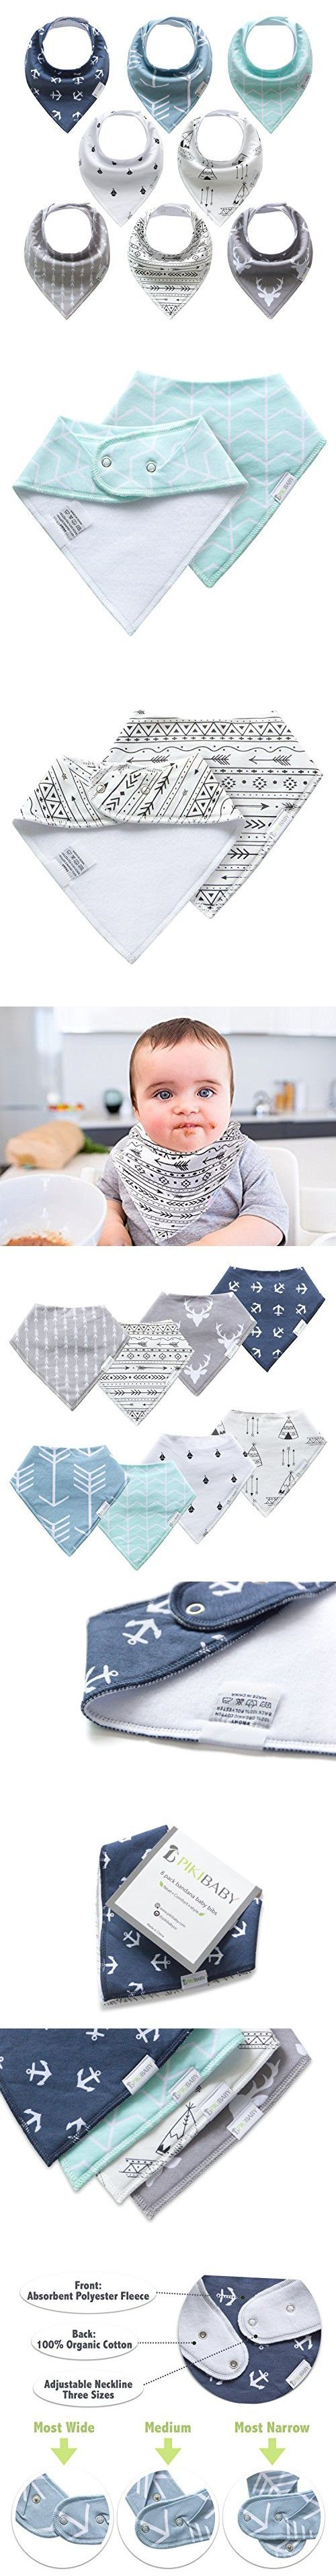 Bandana Baby Bib Set for Boys and Girls by Pikibaby, Unisex 8-Pack, 100% Organic Cotton, Cute Newborn and Cool Baby Shower Gift for Teething/Drooling, Soft, Absorbent and Hypoallergenic